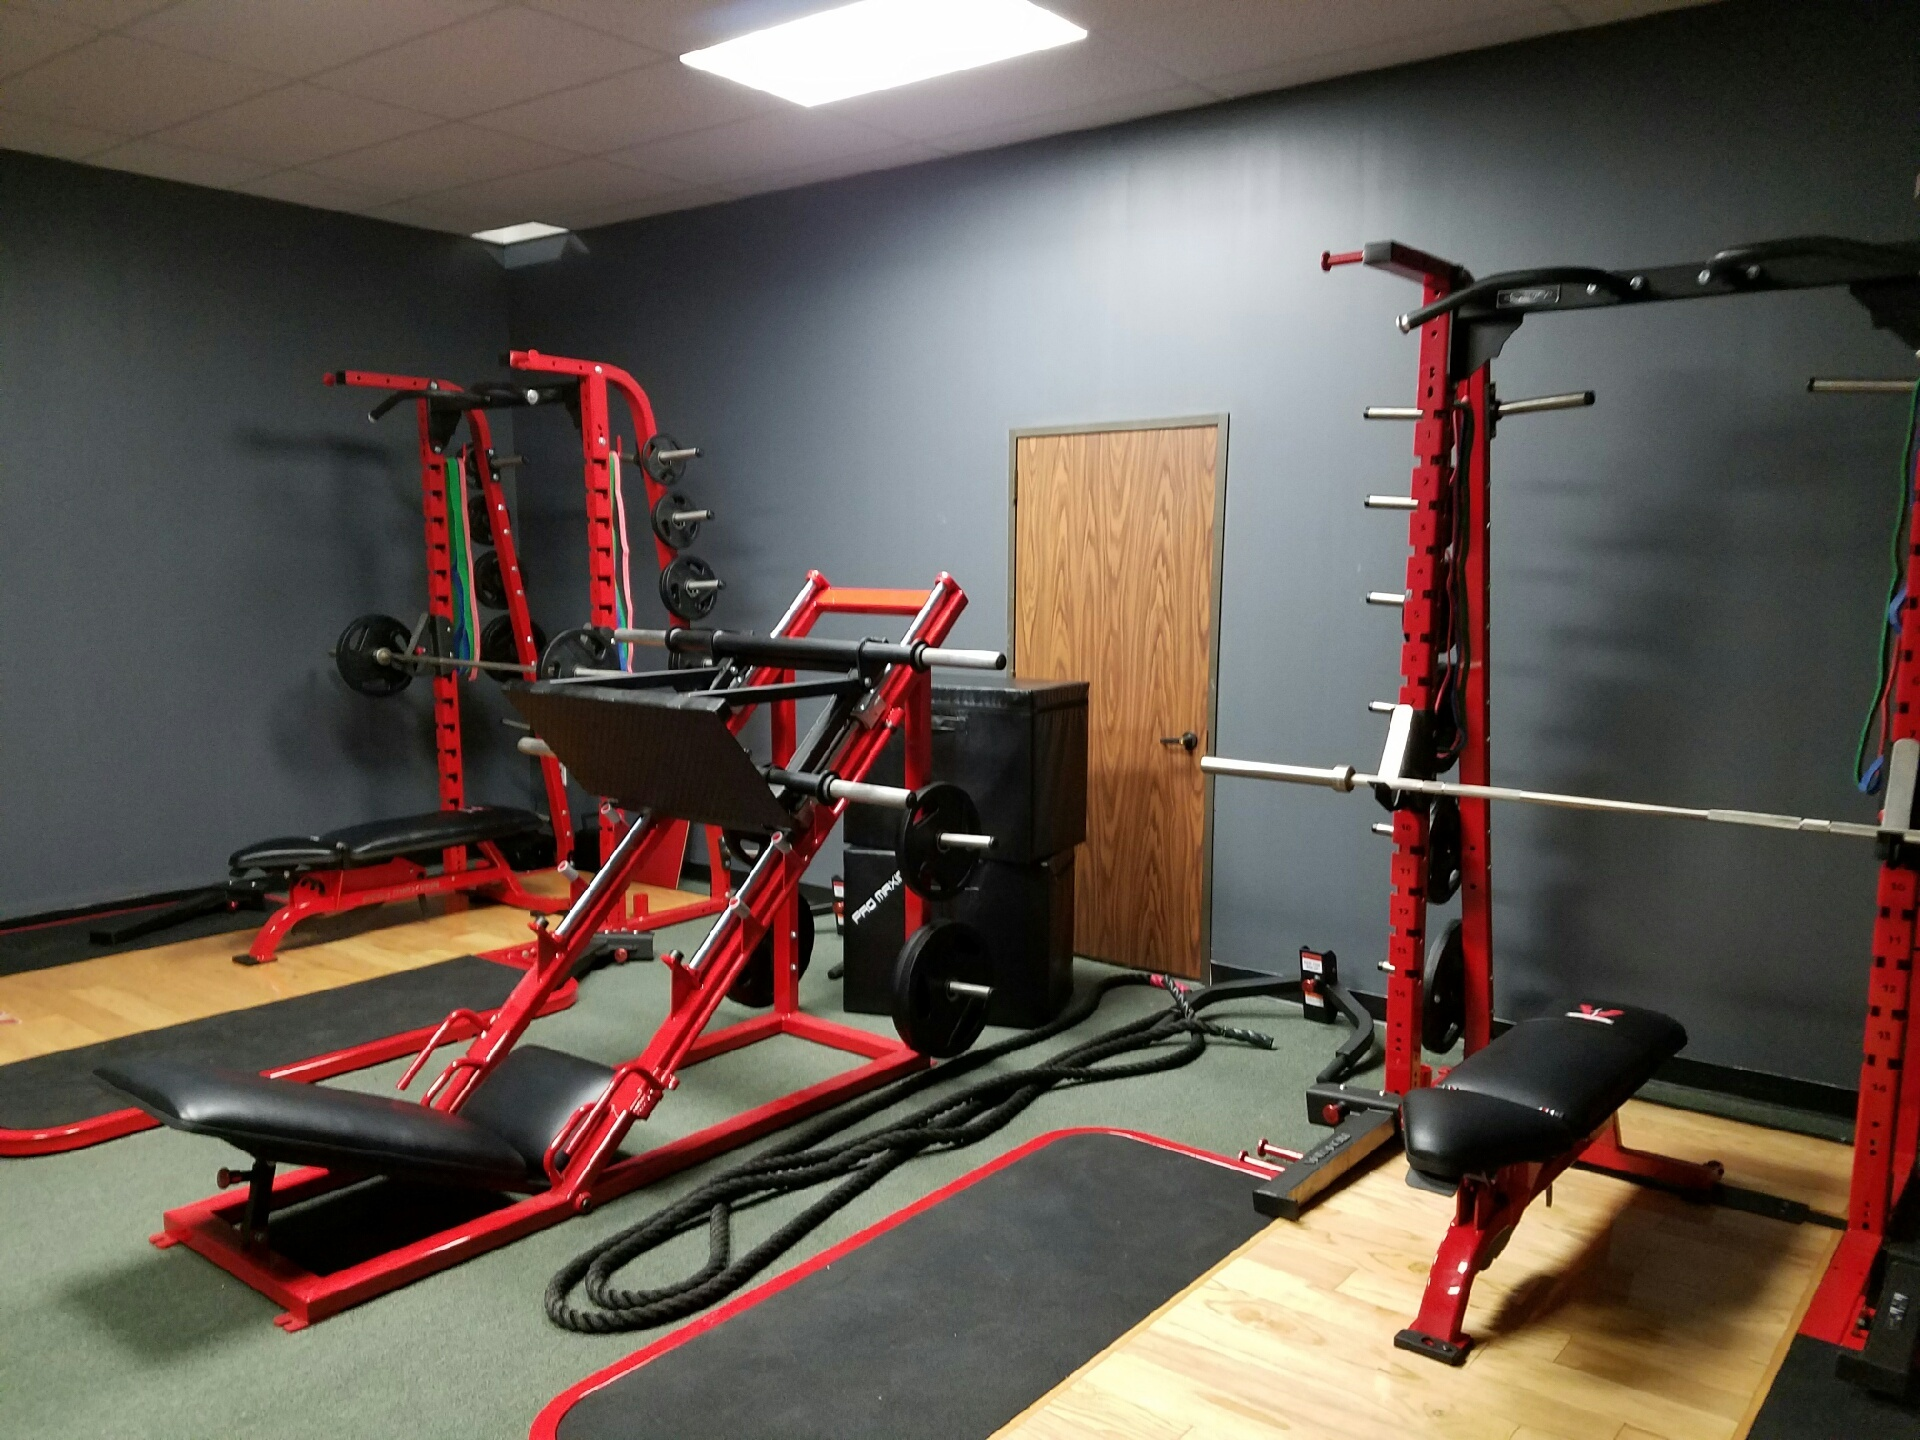 Weight Room 1-Day Pass - $5.00